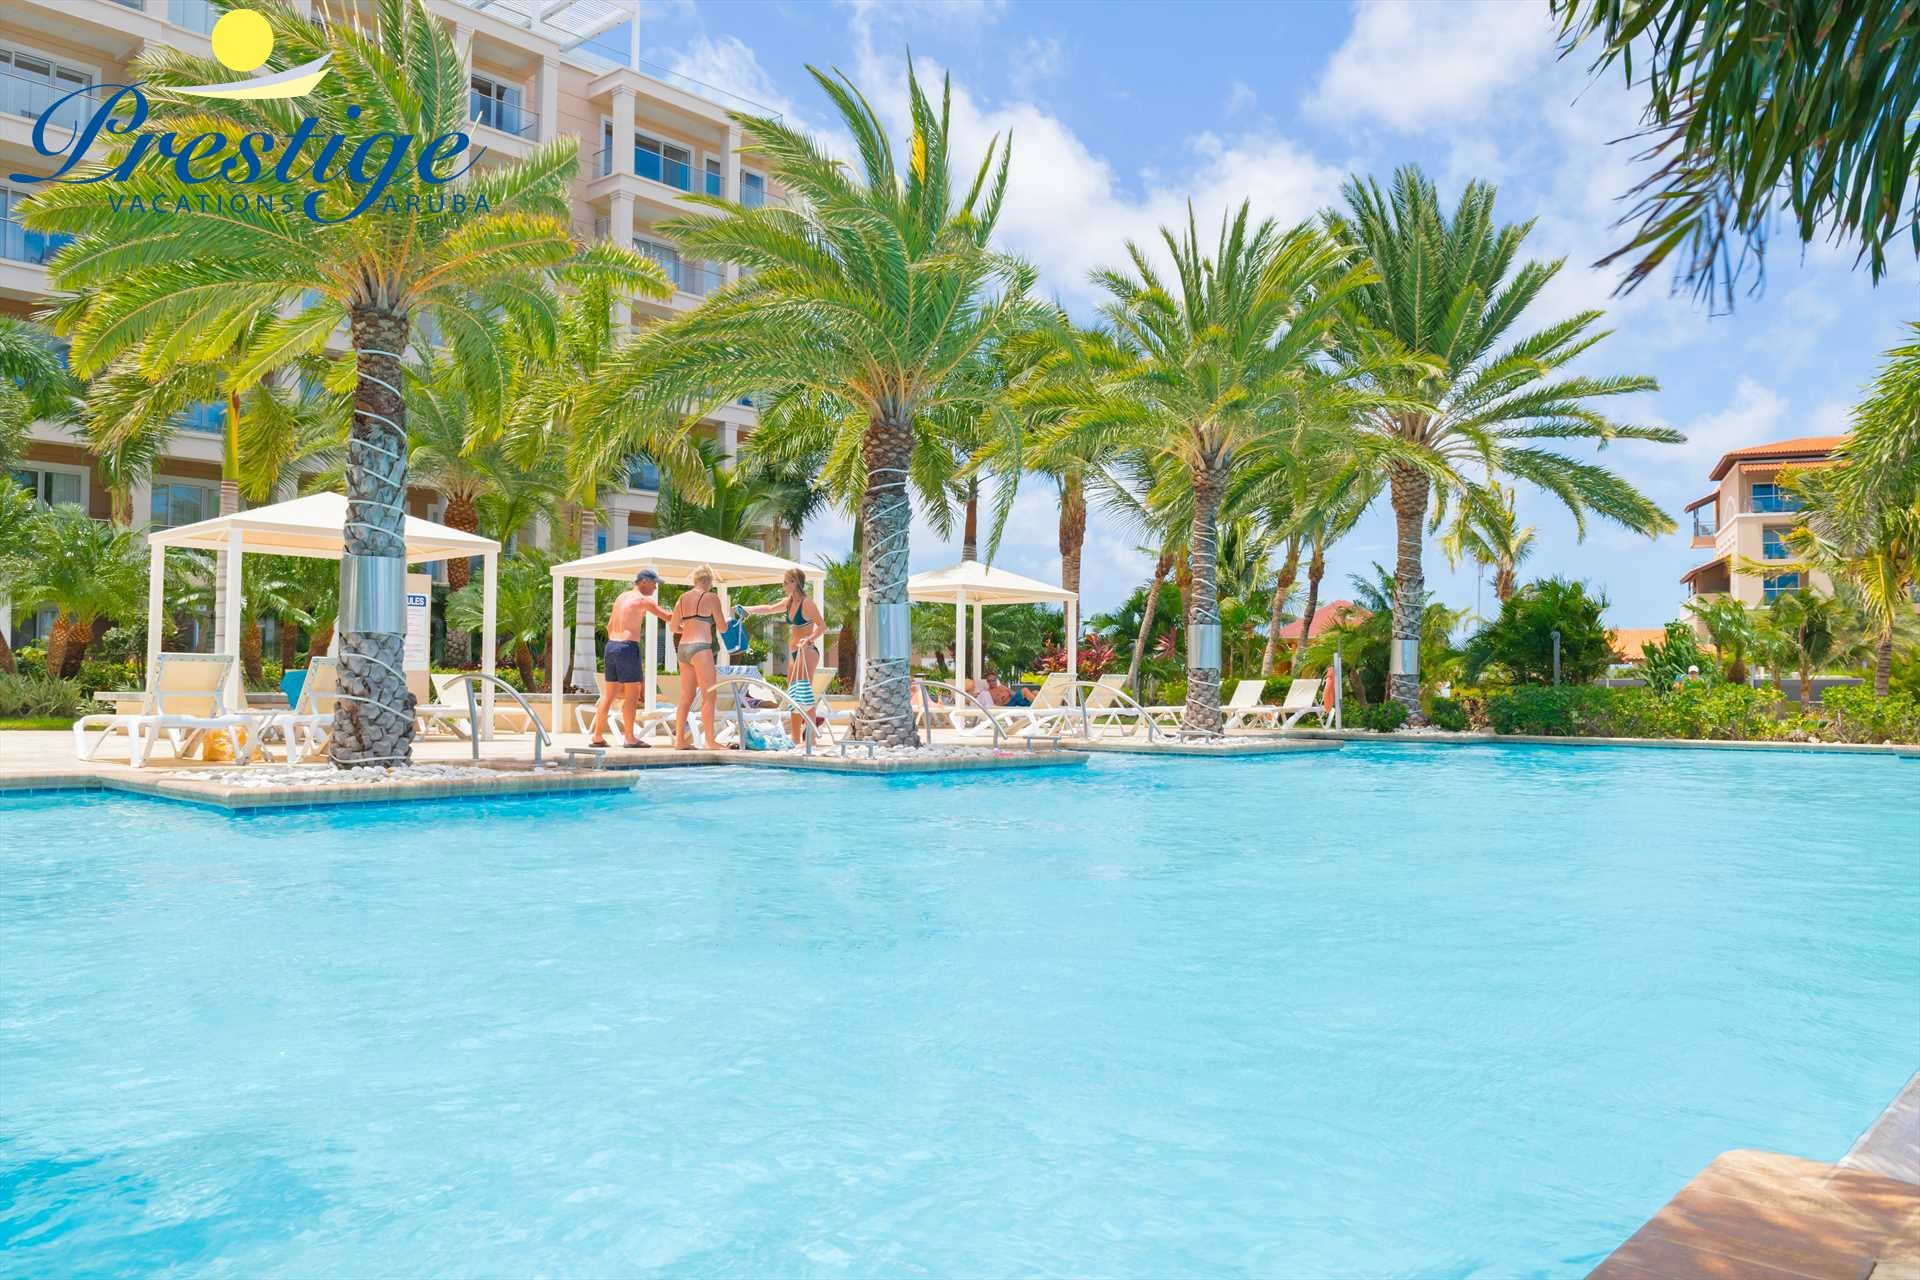 LeVent Beach Resort Aruba swimming pool to enjoy during your vacation